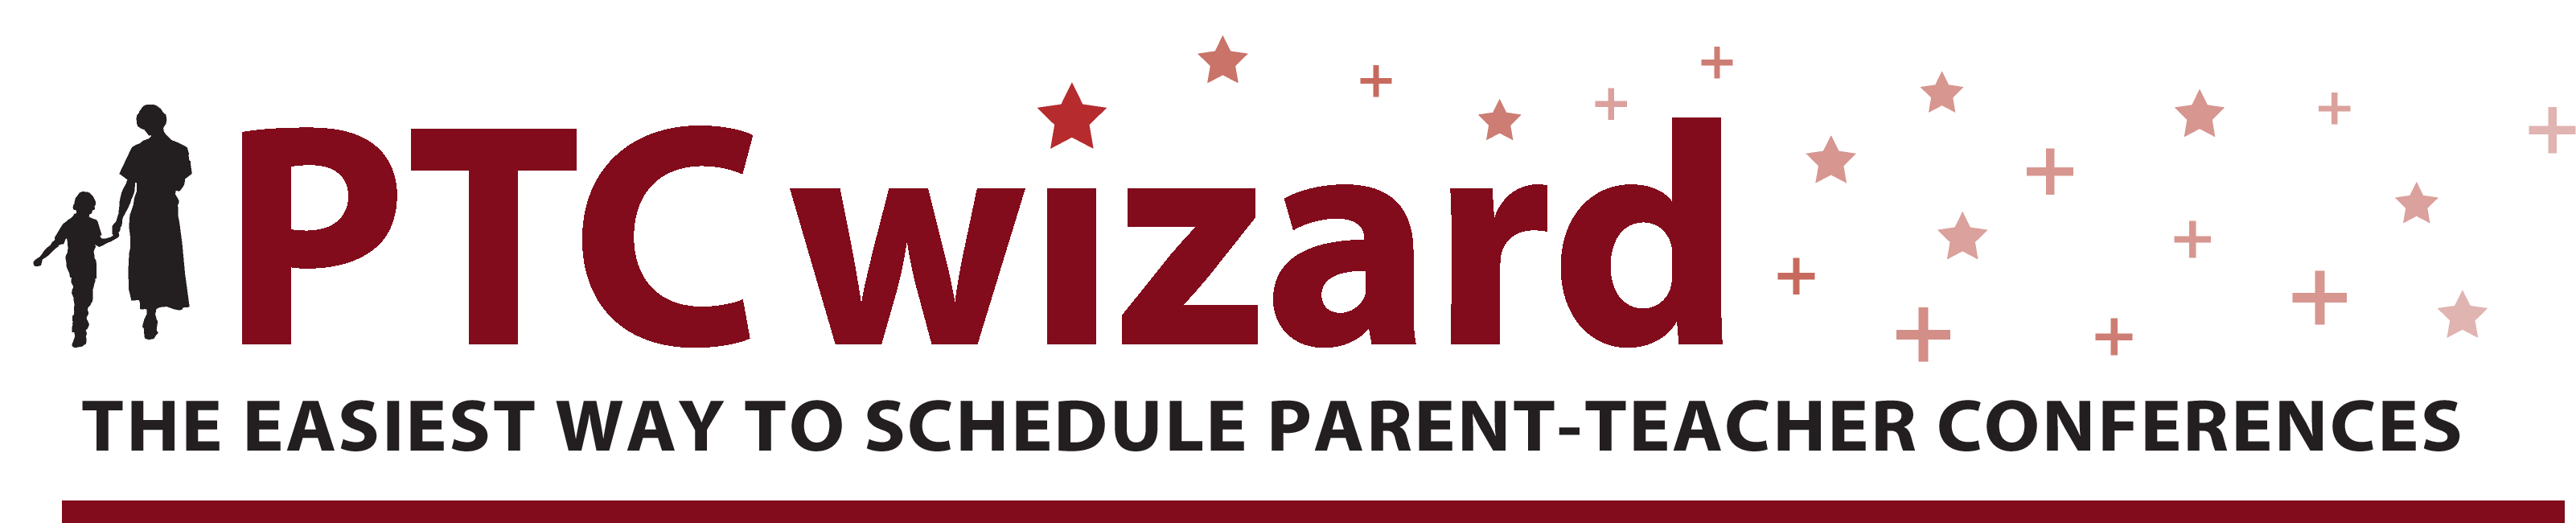 The leading parent teacher conference scheduling software.  This online scheduling system makes scheduling parent teacher conferences easy for school administrators, teachers and parents.